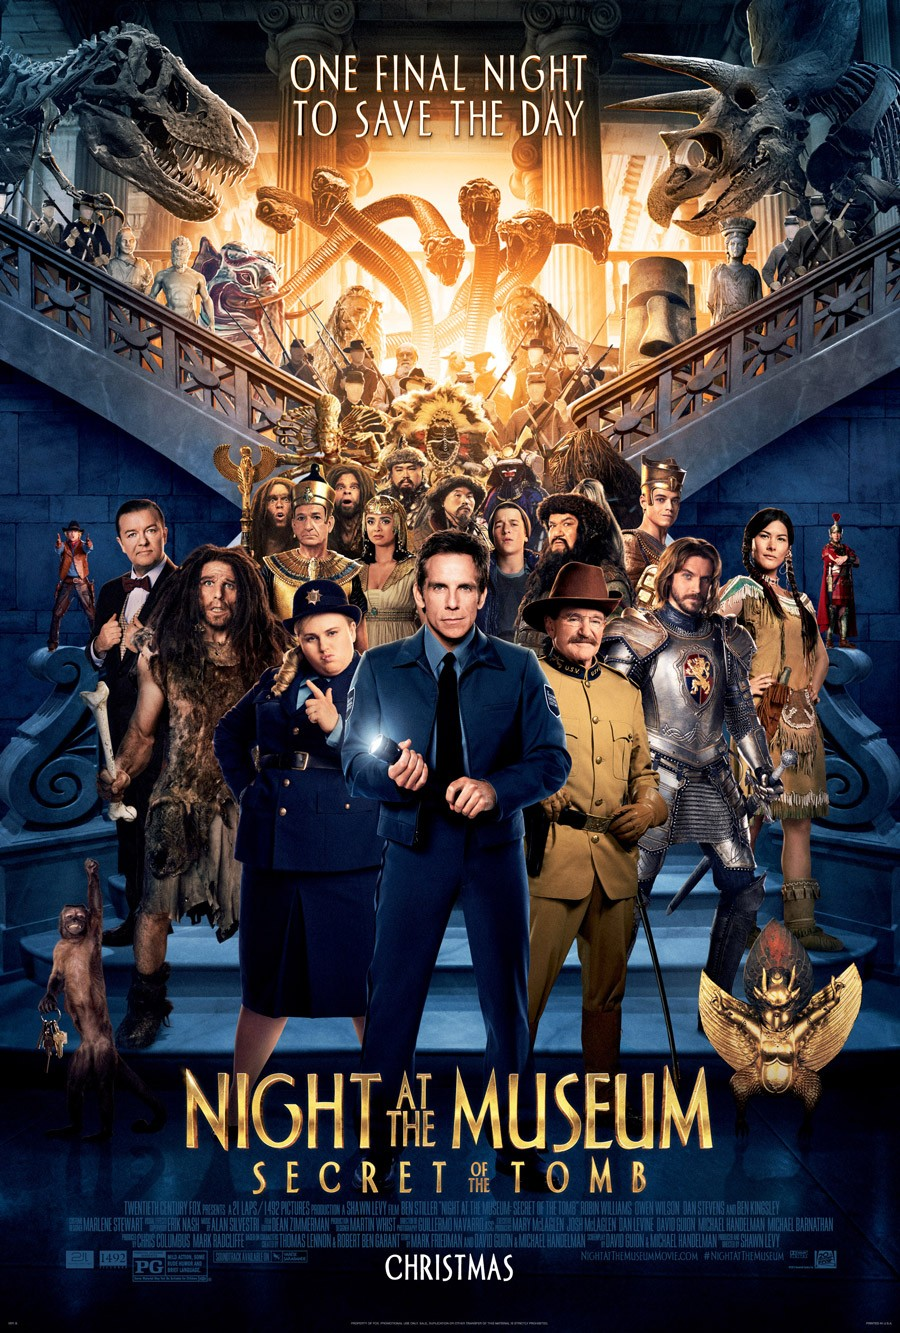 Night at the Museum Secret of the Tomb-Official Poster XLG-16OUTUBRO2014-00